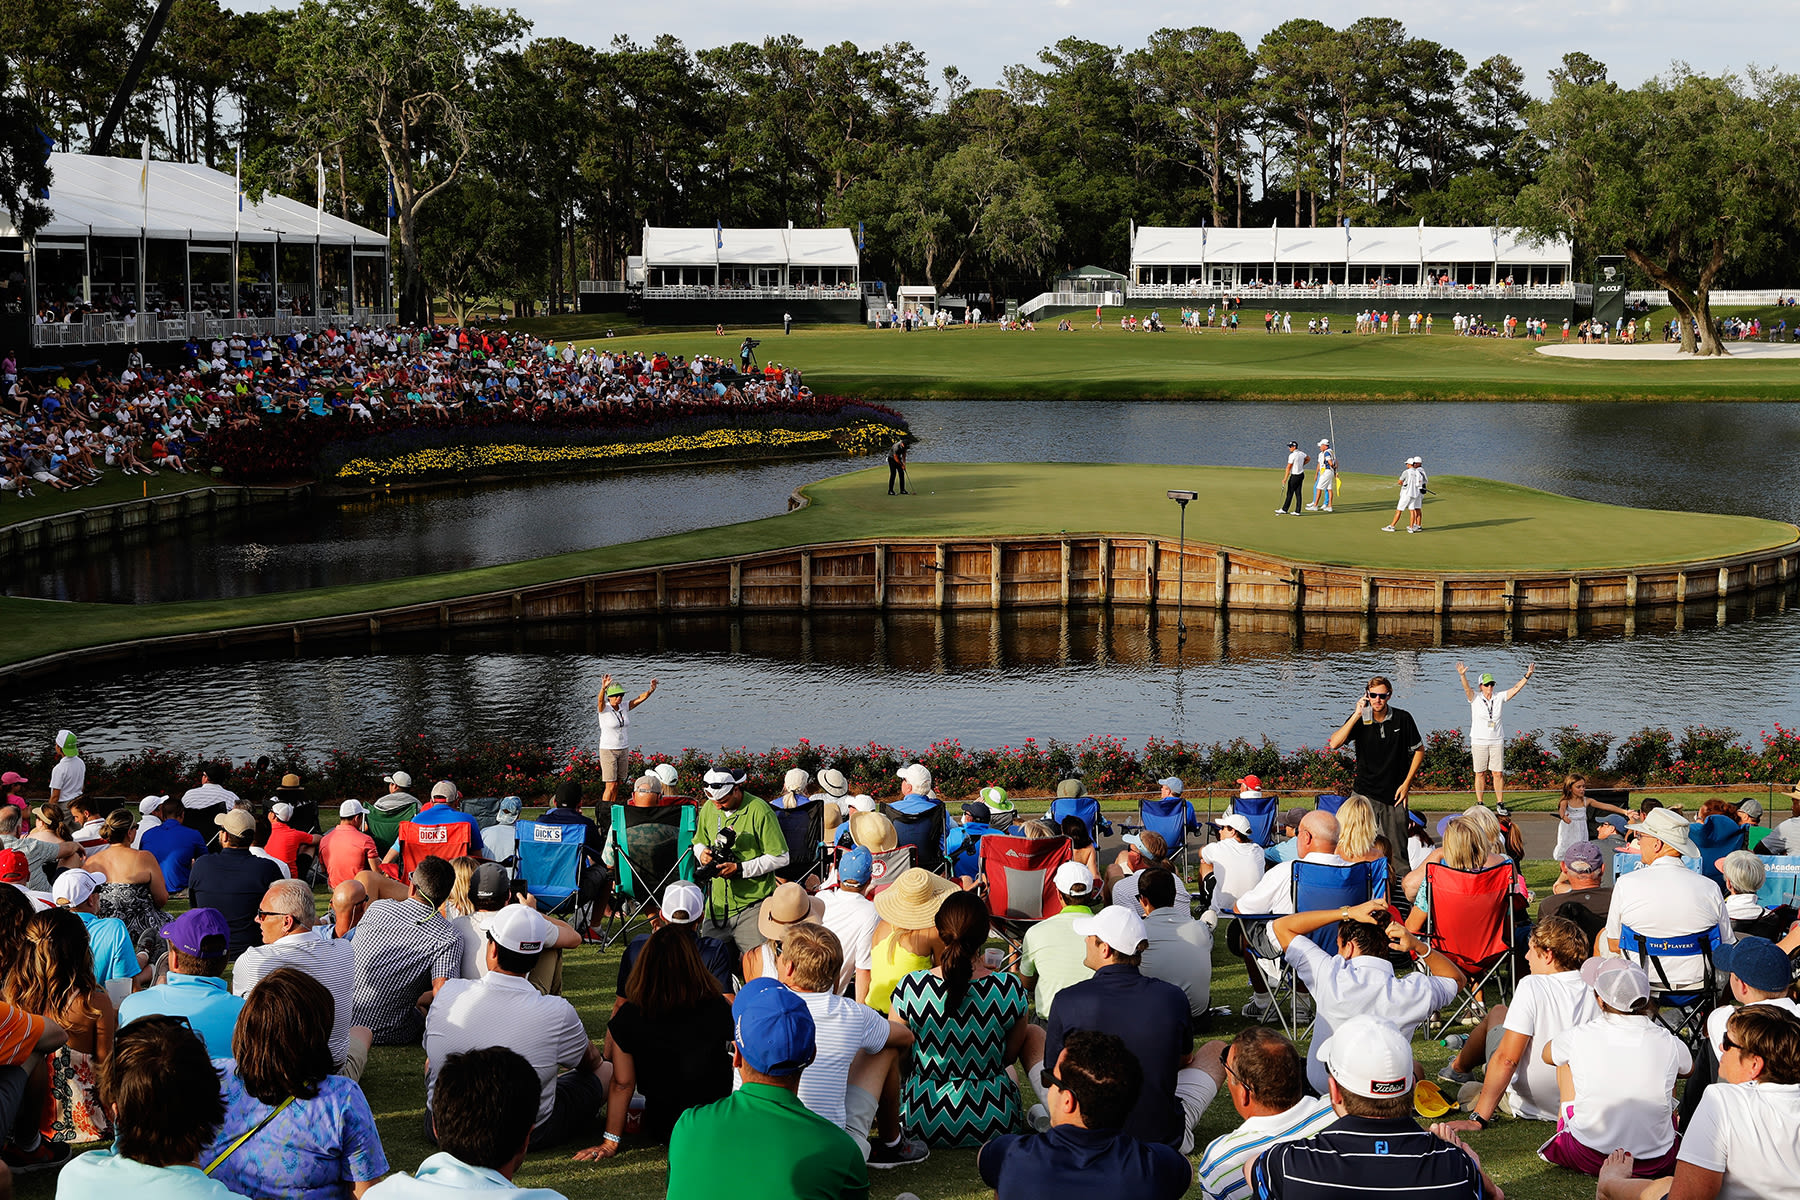 Jason Day of Australia putts on the 17th green during the second round of THE PLAYERS Championship at the Stadium course at TPC Sawgrass on May 12, 2017 in Ponte Vedra Beach, Florida. (Photo by Jamie Squire/Getty Images)